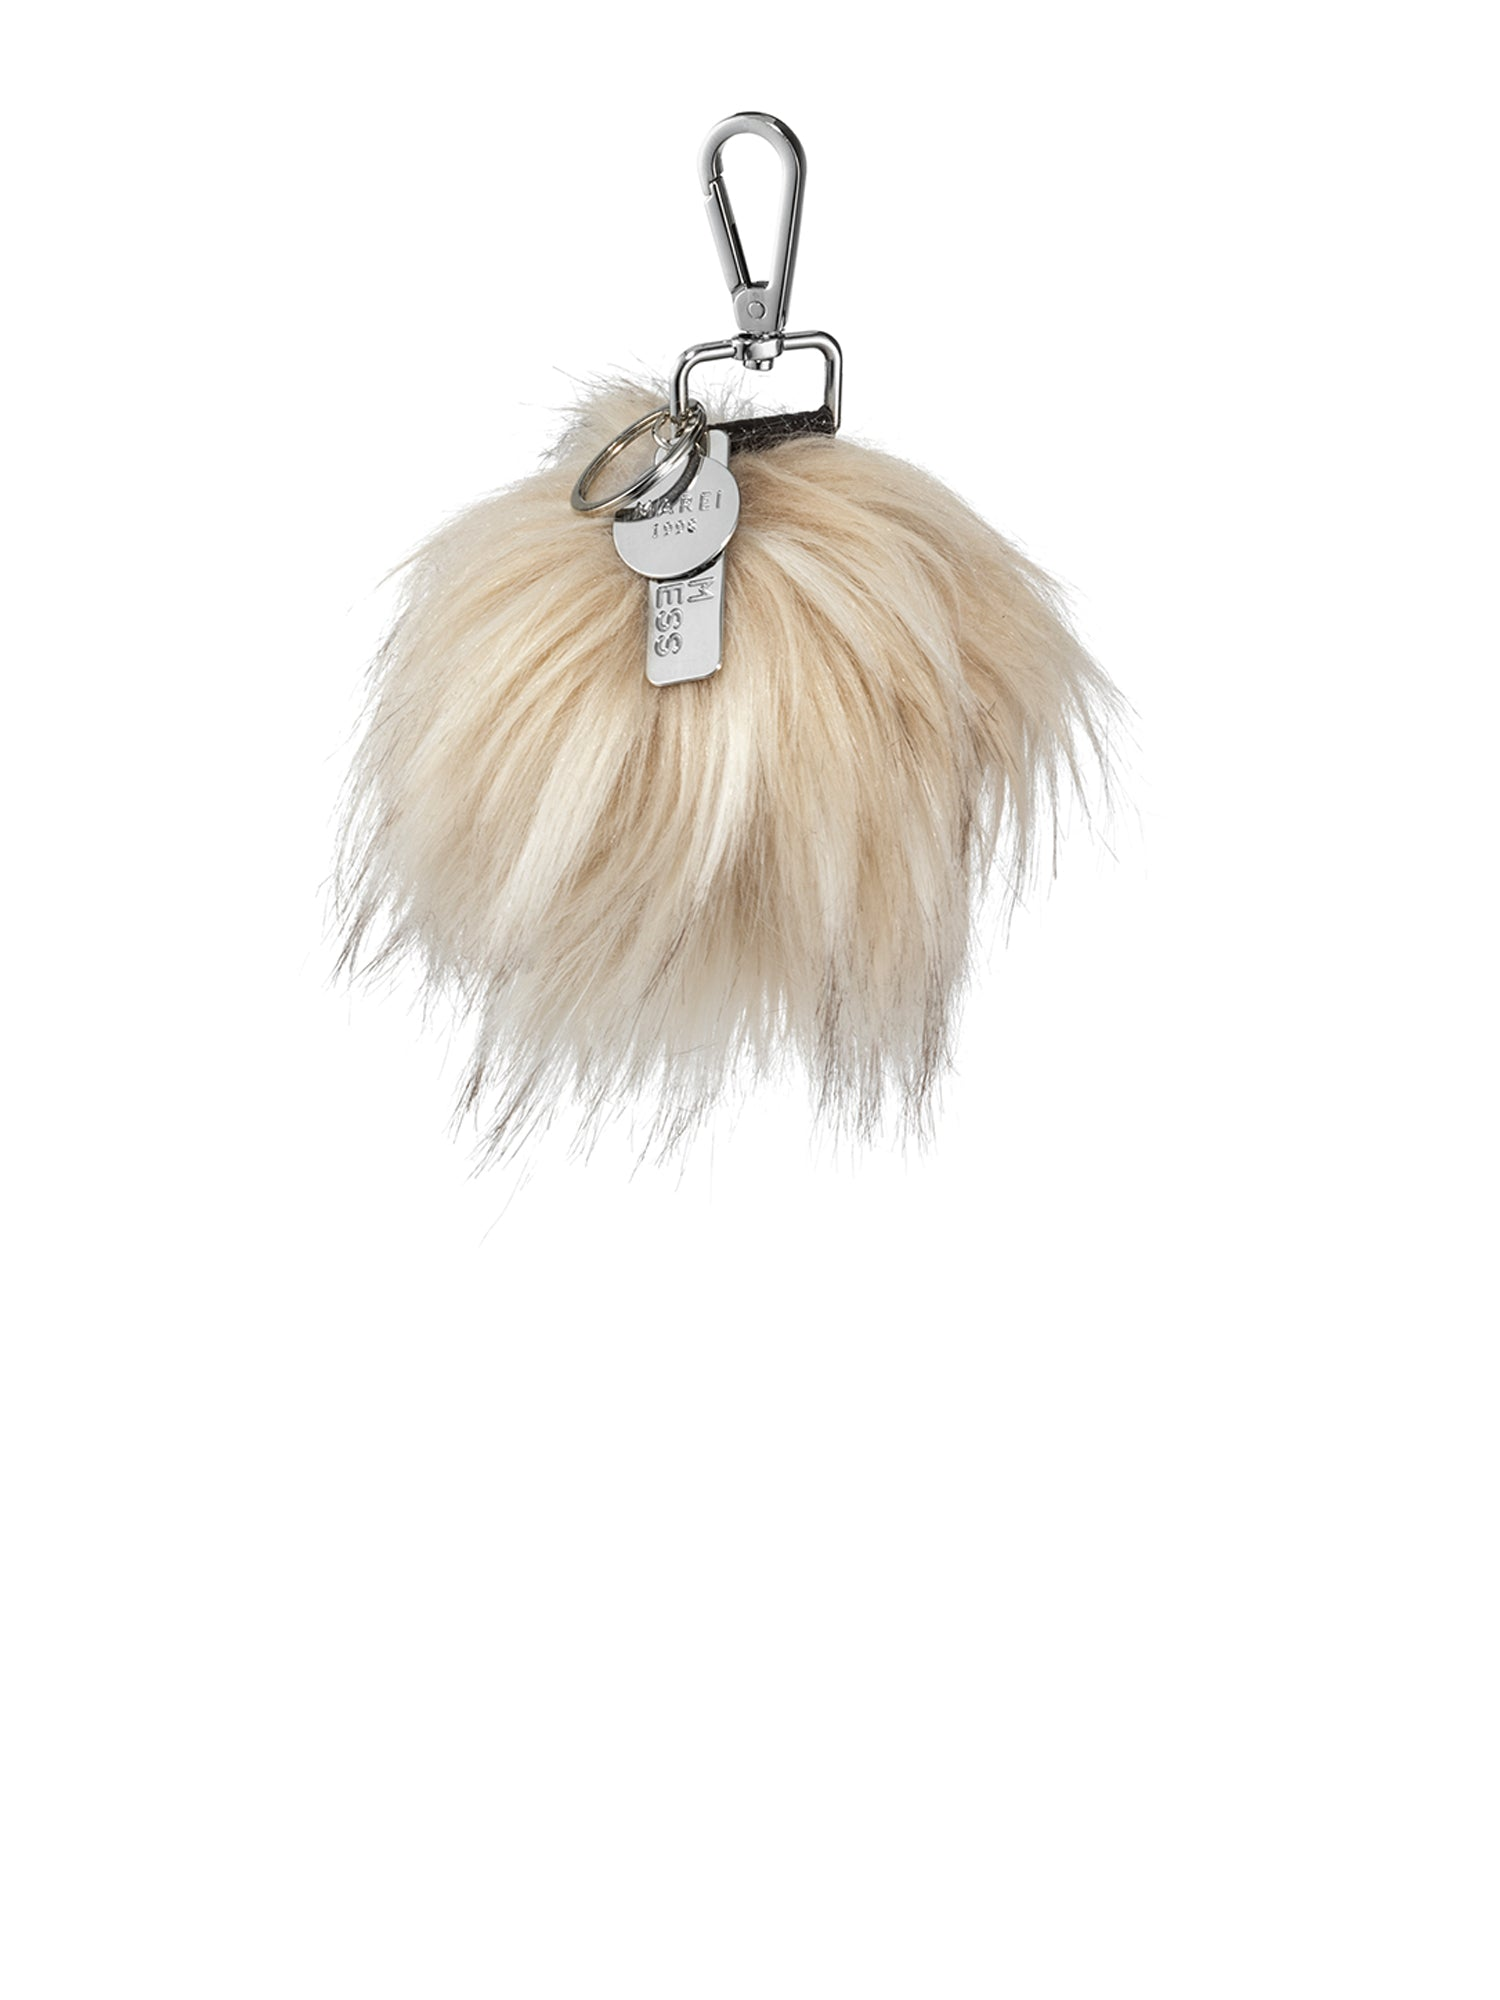 A Packshot Of Marei1998's FauxPom Bag Charm In Neutral/Beige Color. Featuring Nickle Metal Clip And Customized Marei1998 Logo Plates. Perfect As A Keyring Or Charm. Front View.